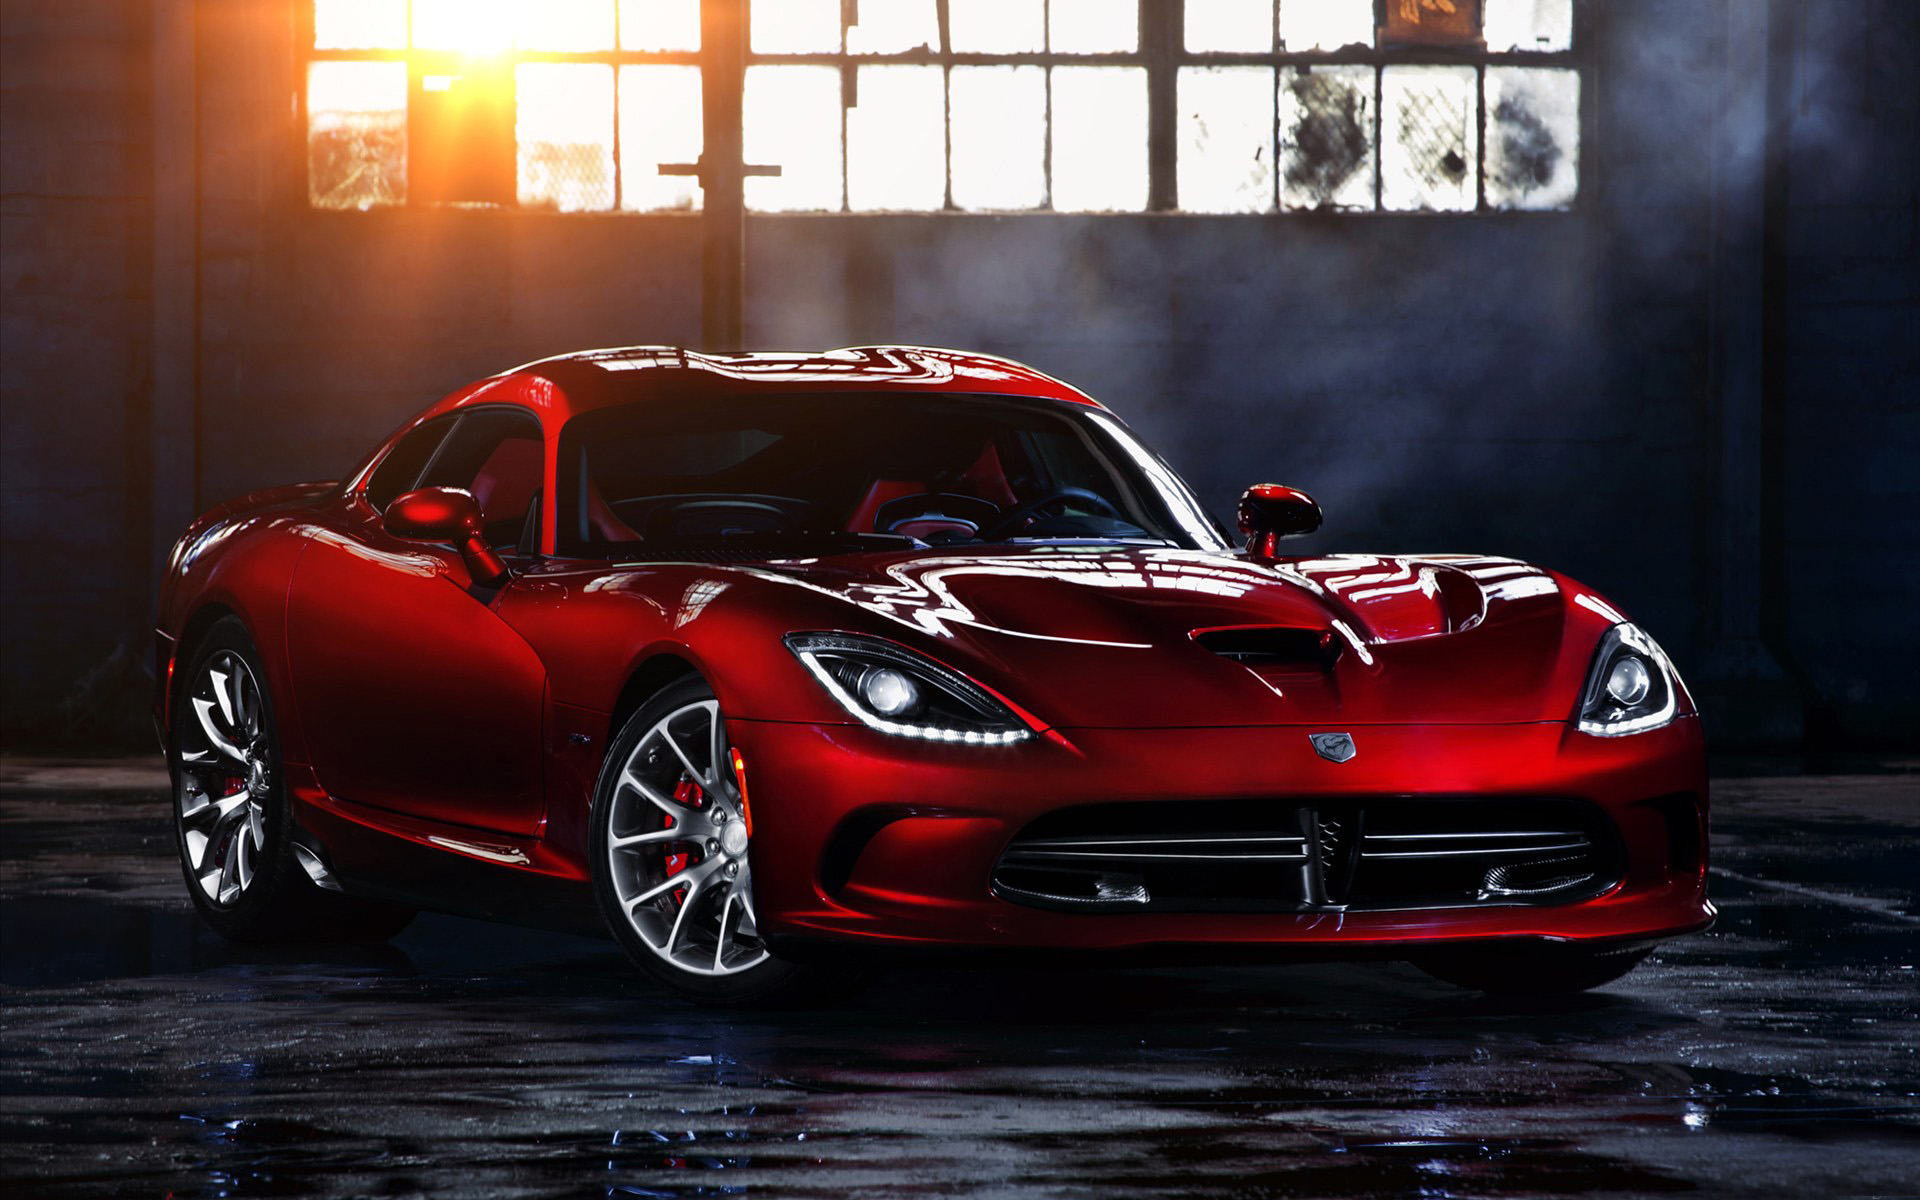 Dodge SRT Viper wide Wallpaper HD Free